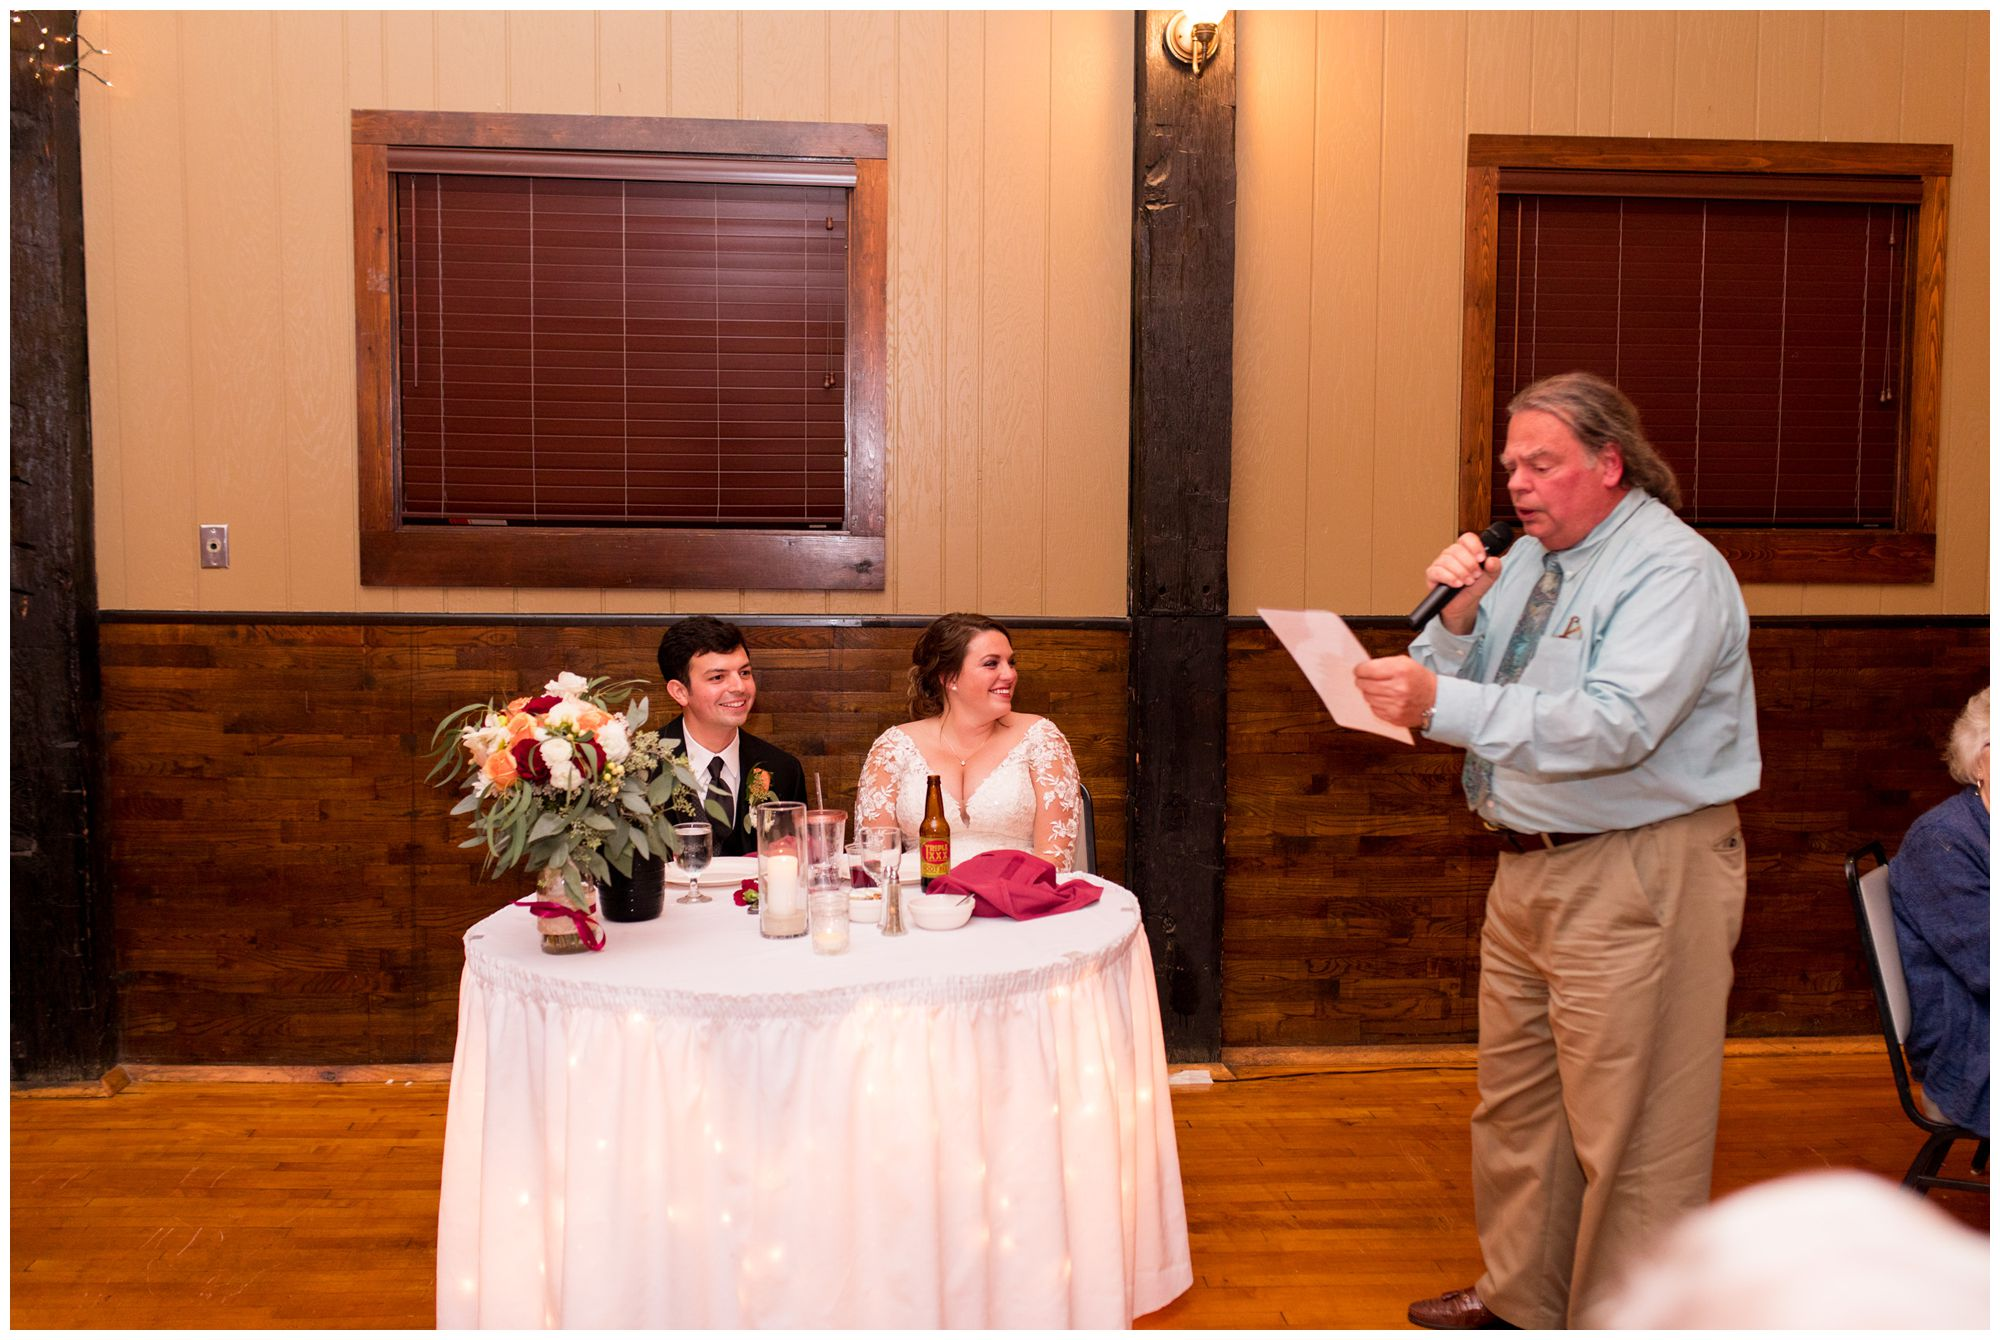 uncle sings original song to the couple during Fort Wayne wedding at Goeglein Homestead